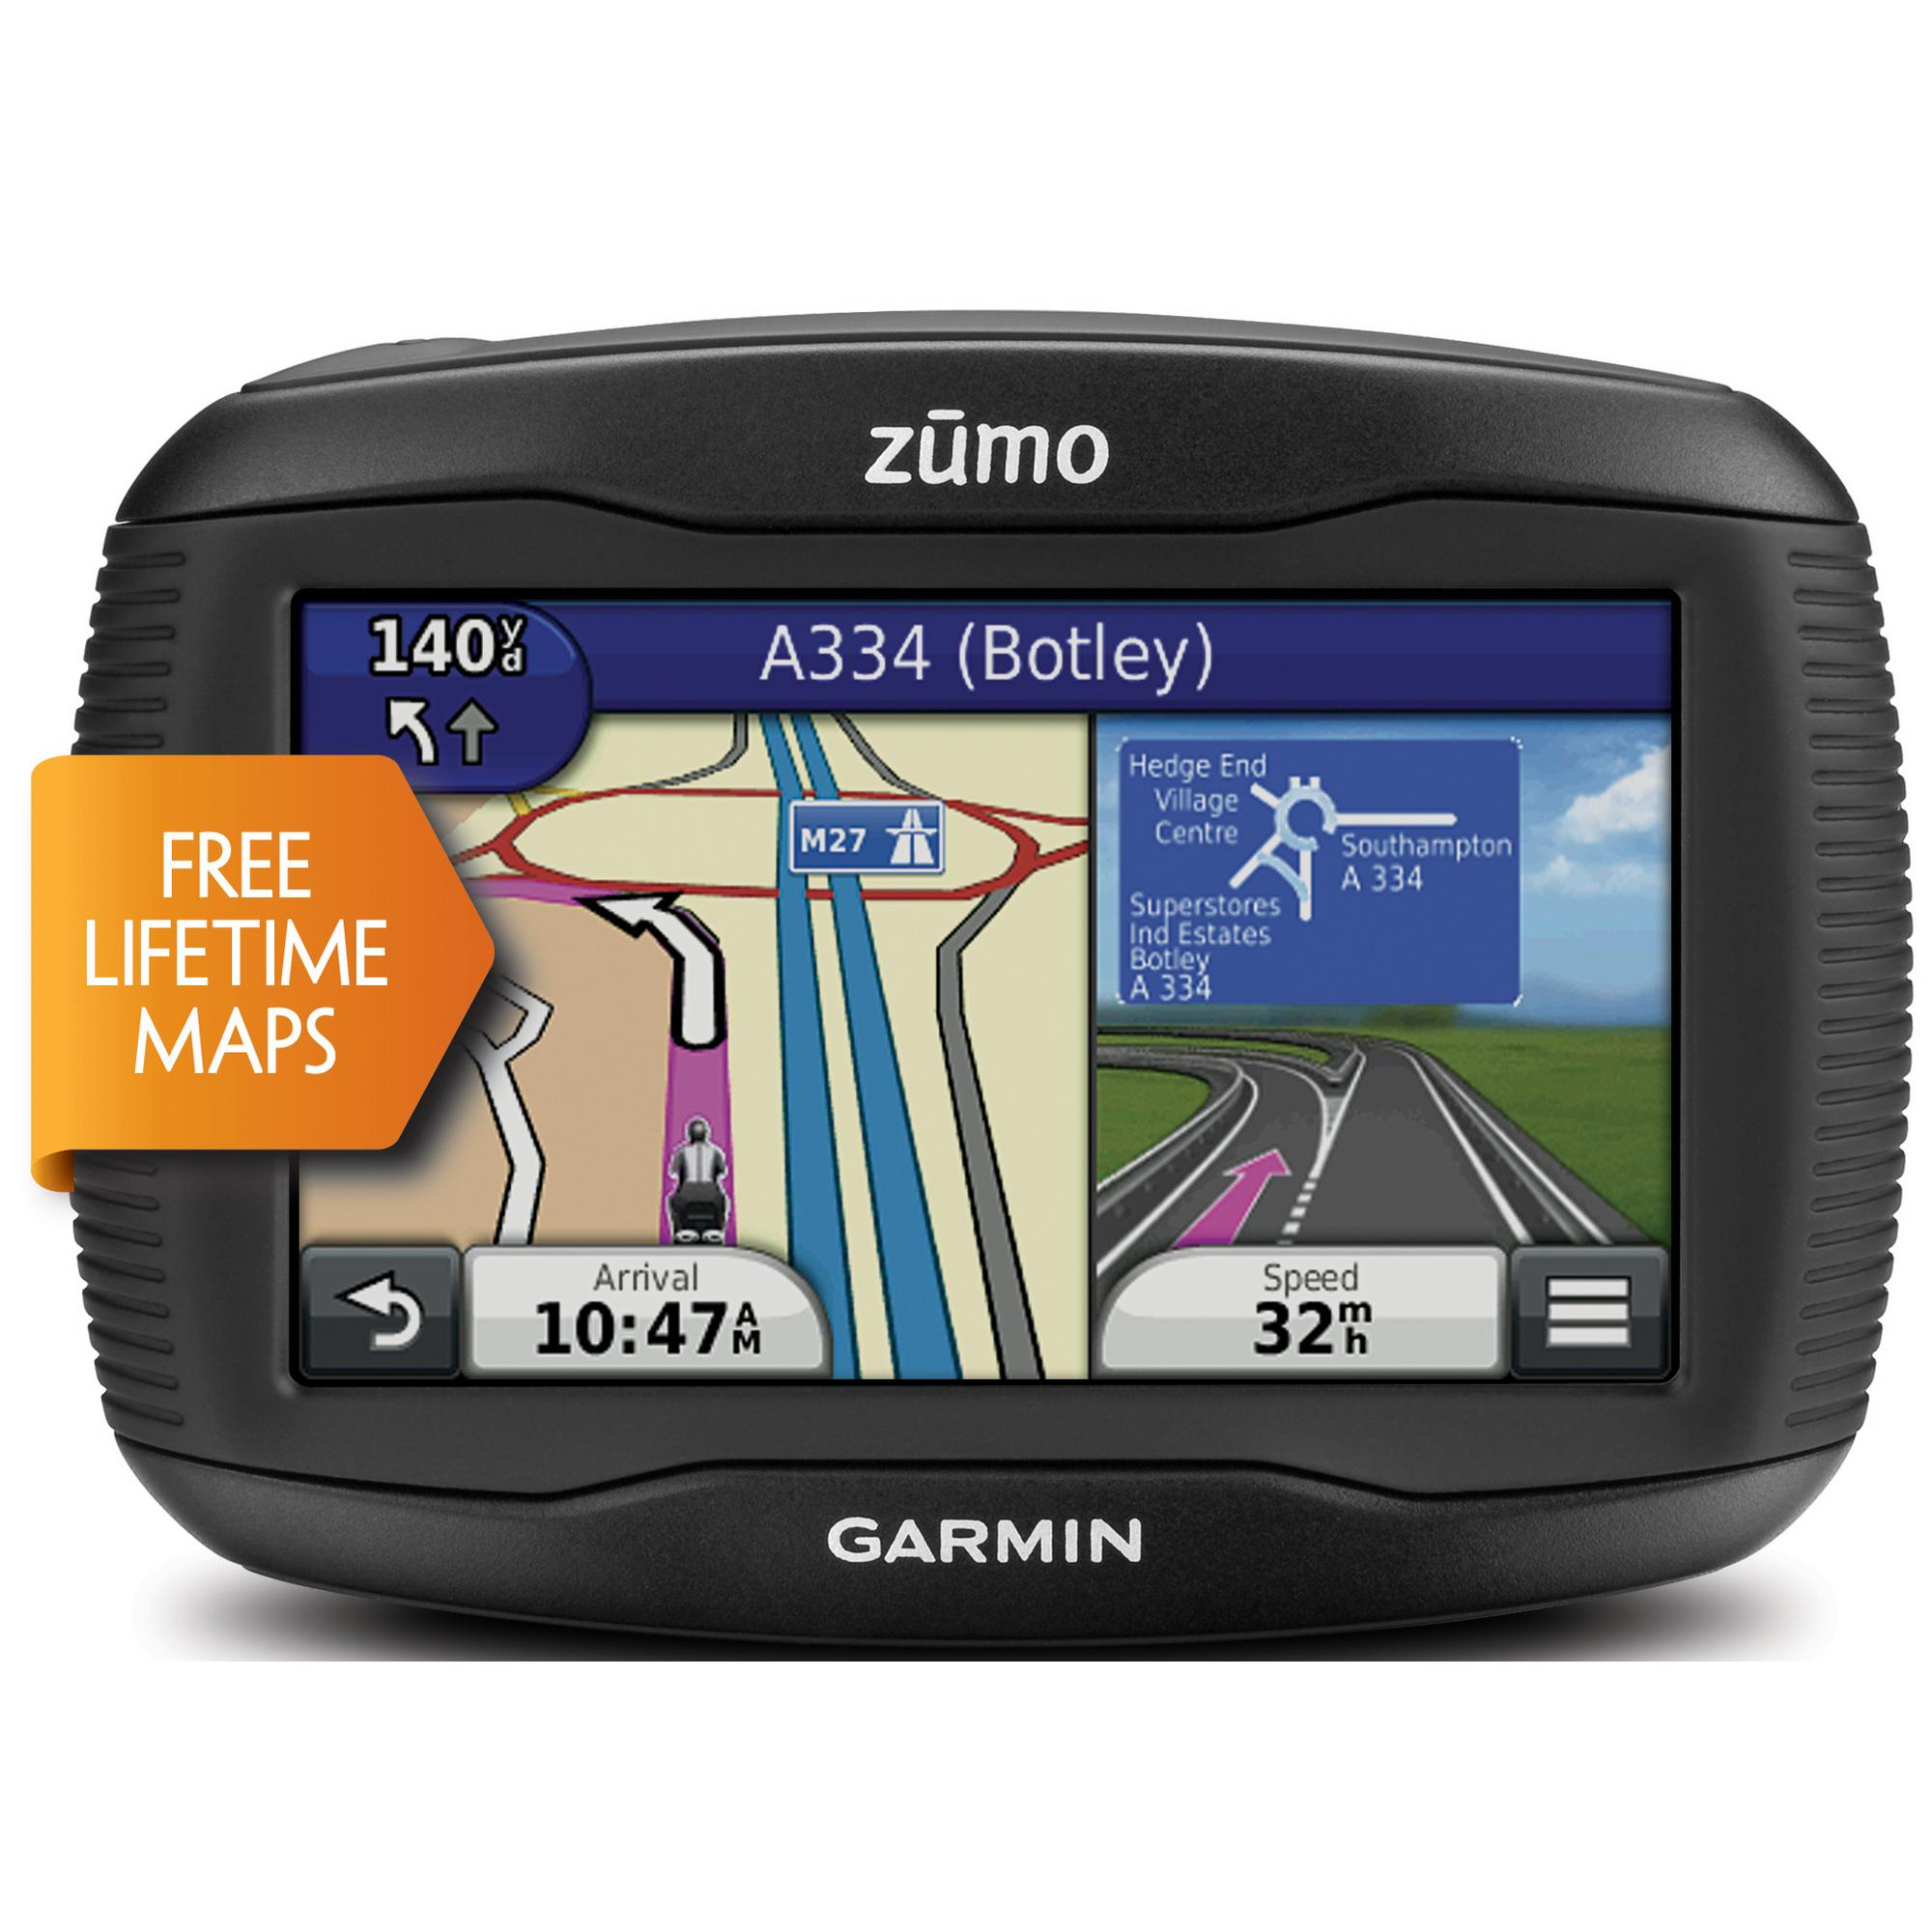 new garmin zumo 395lm europa uk gps navi motorrad. Black Bedroom Furniture Sets. Home Design Ideas